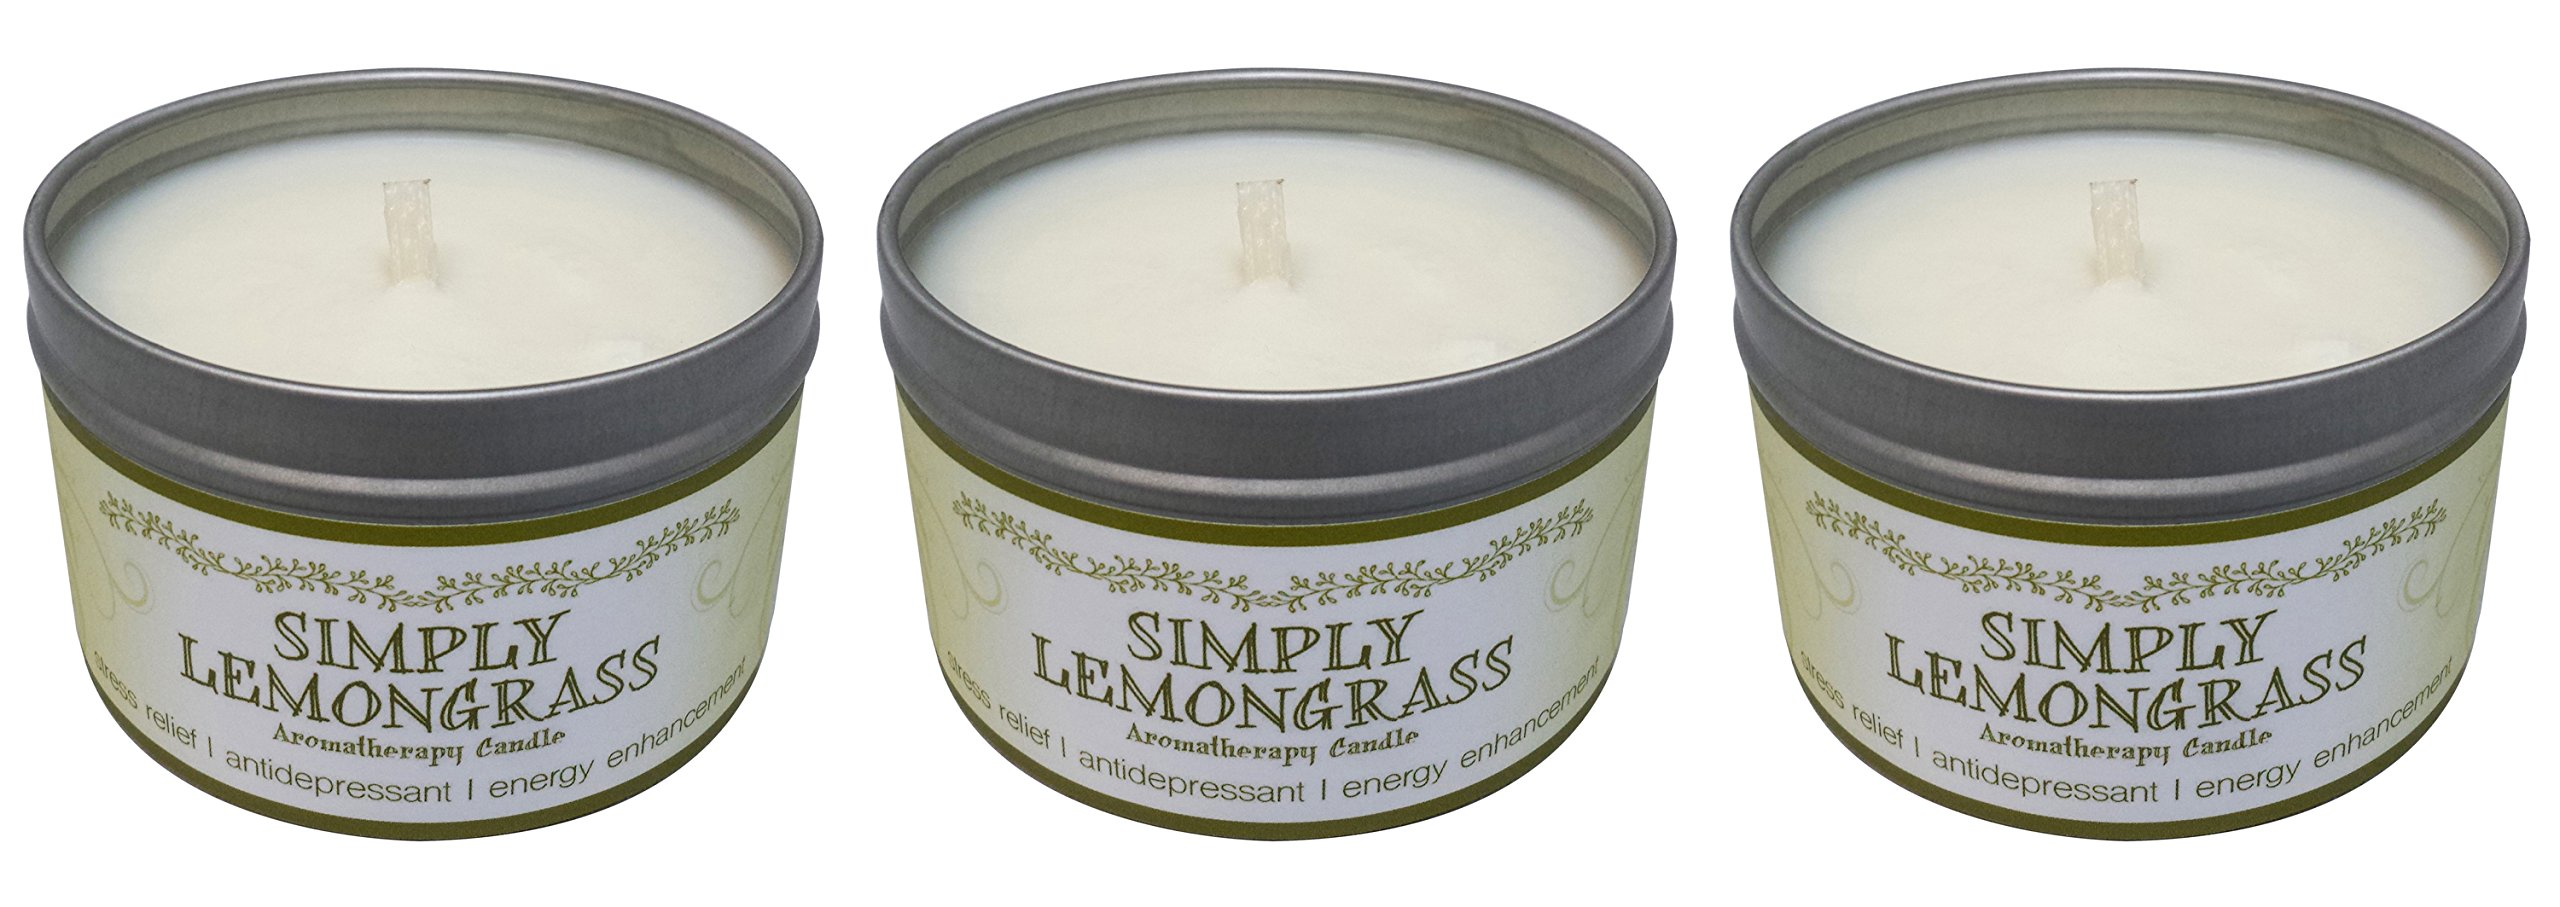 Our Own Candle Company Soy Wax Aromatherapy Candle, Simply Lemongrass, 6.5 Ounce (3 Pack) by Our Own Candle Company